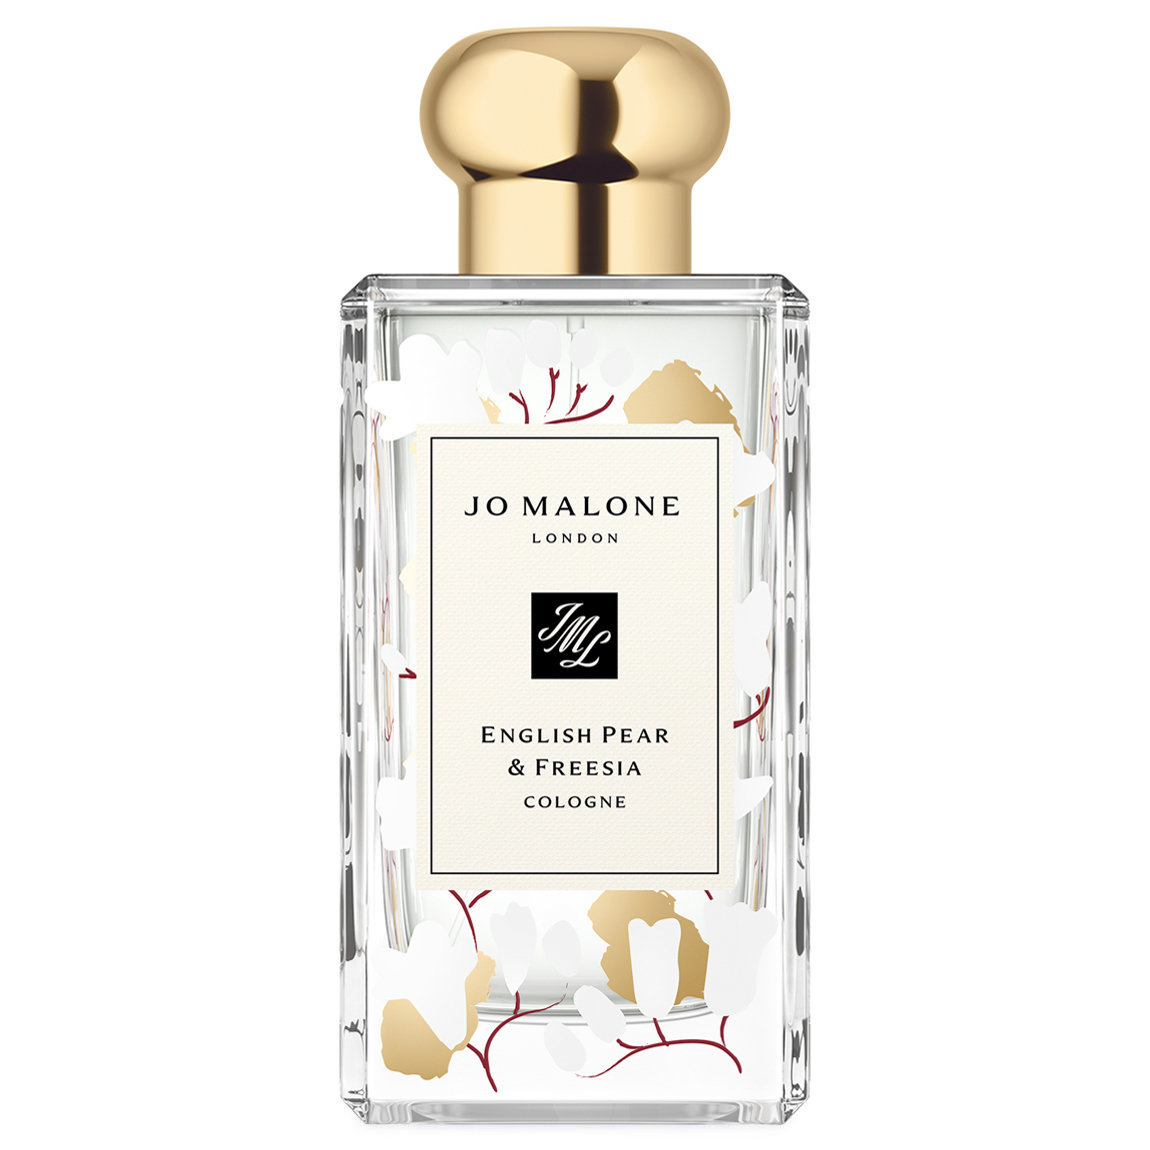 Jo Malone London Limited Edition English Pear & Freesia Decorated Cologne 100 ml alternative view 1 - product swatch.